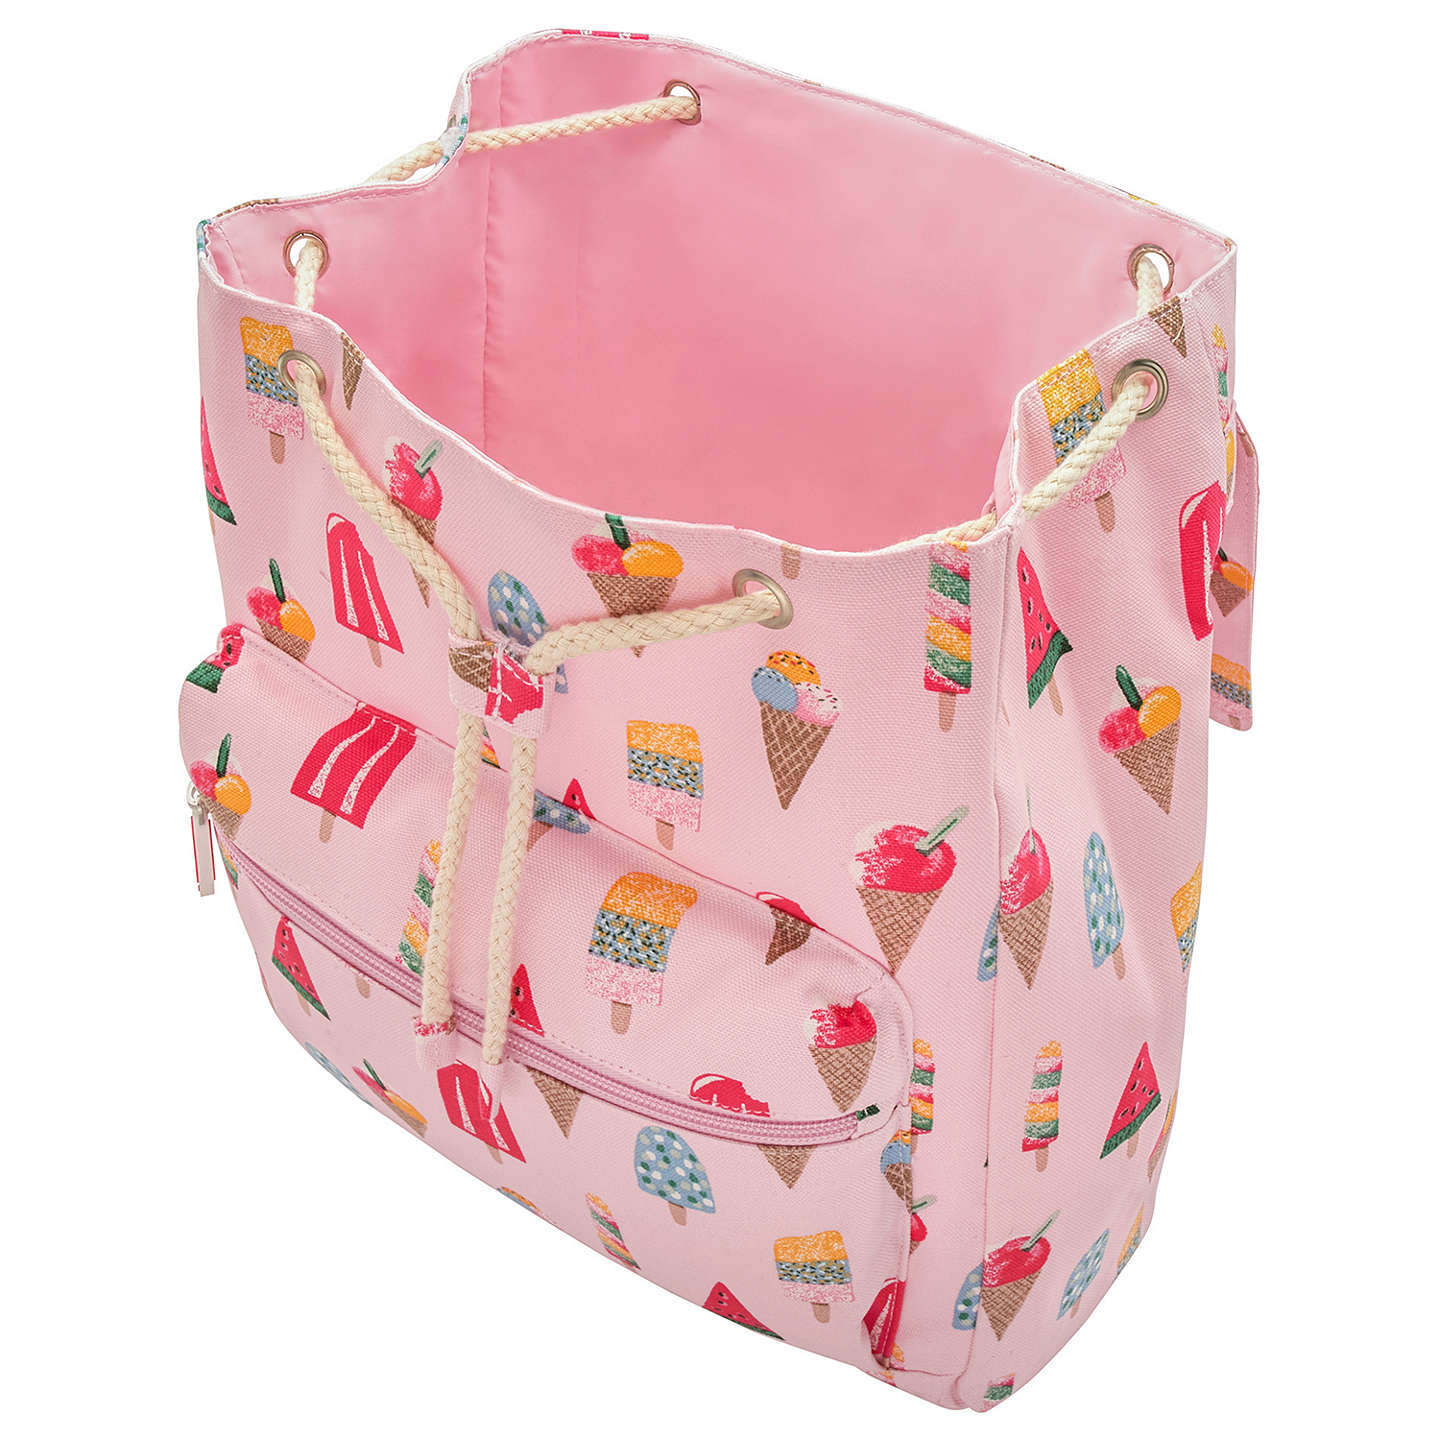 ... BuyCath Kidston Childrenu0027s Little Ice Cream Summer Backpack Pink Online at johnlewis.com  sc 1 st  John Lewis & Cath Kidston Childrenu0027s Little Ice Cream Summer Backpack Pink at ...